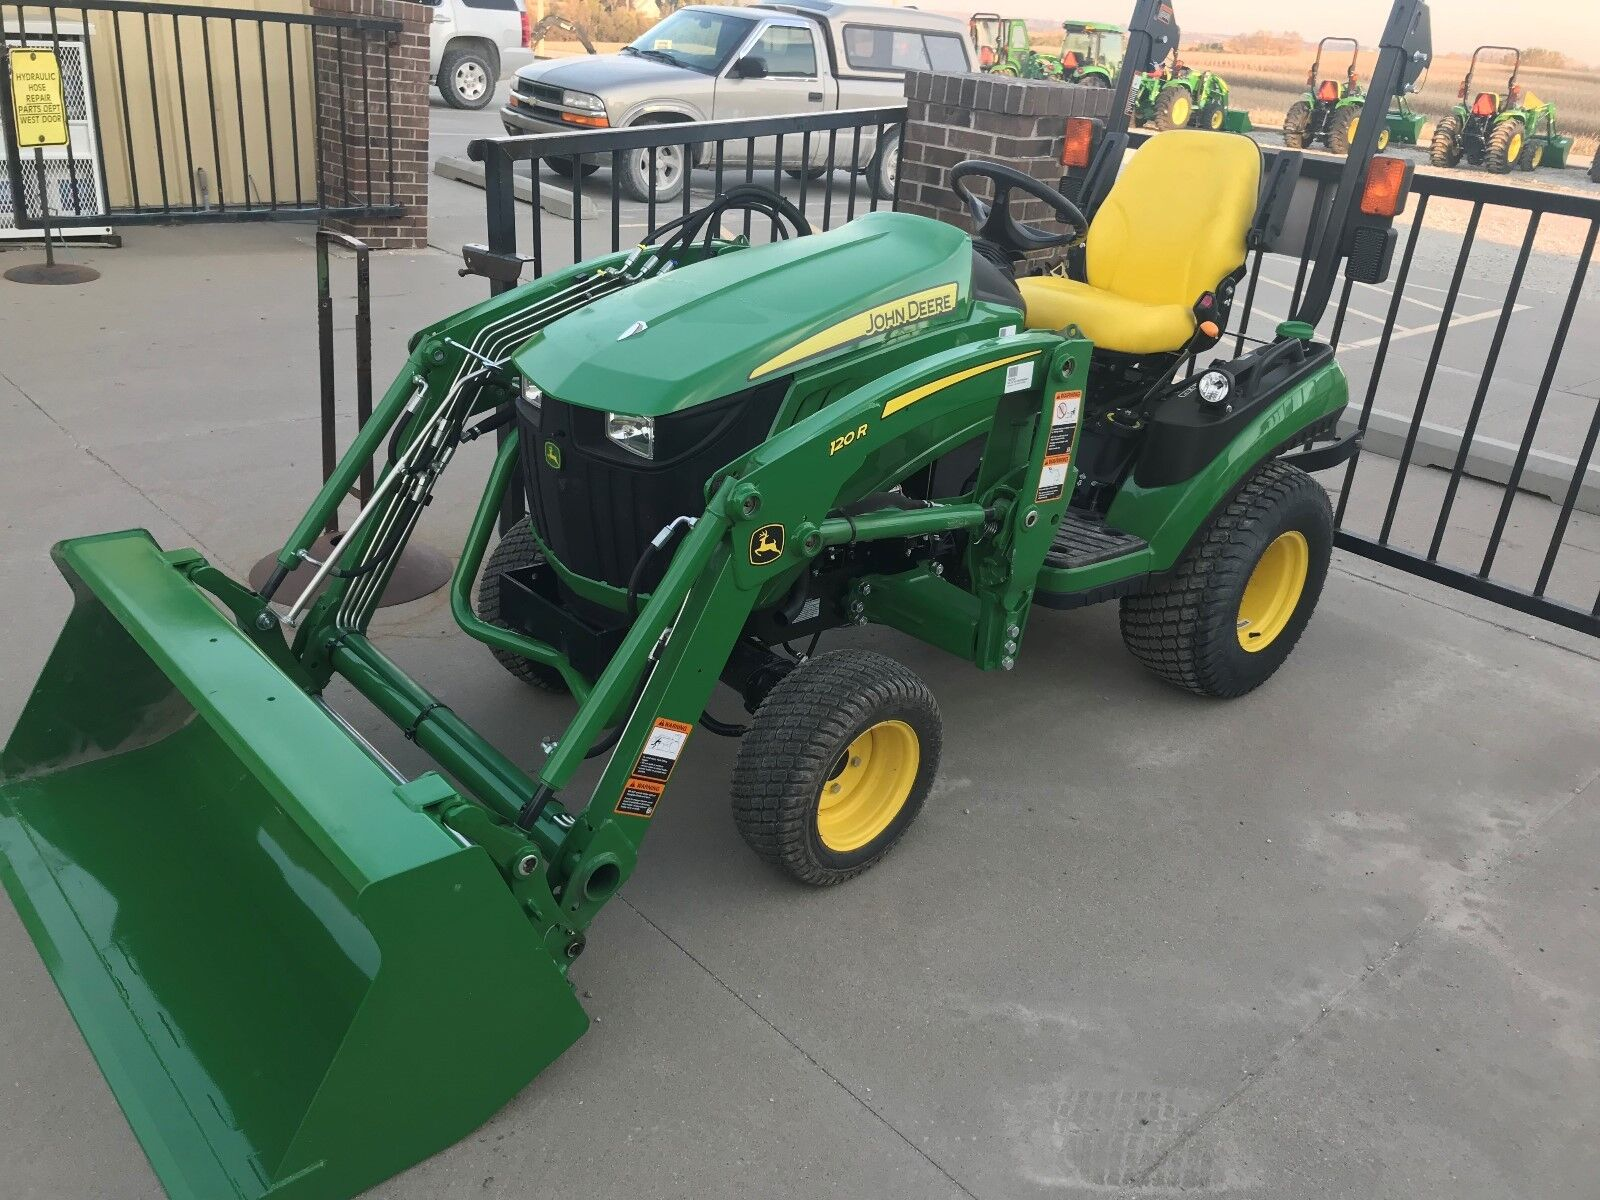 John Deere Compact Tractor Attachments : John deere r compact tractor with loader